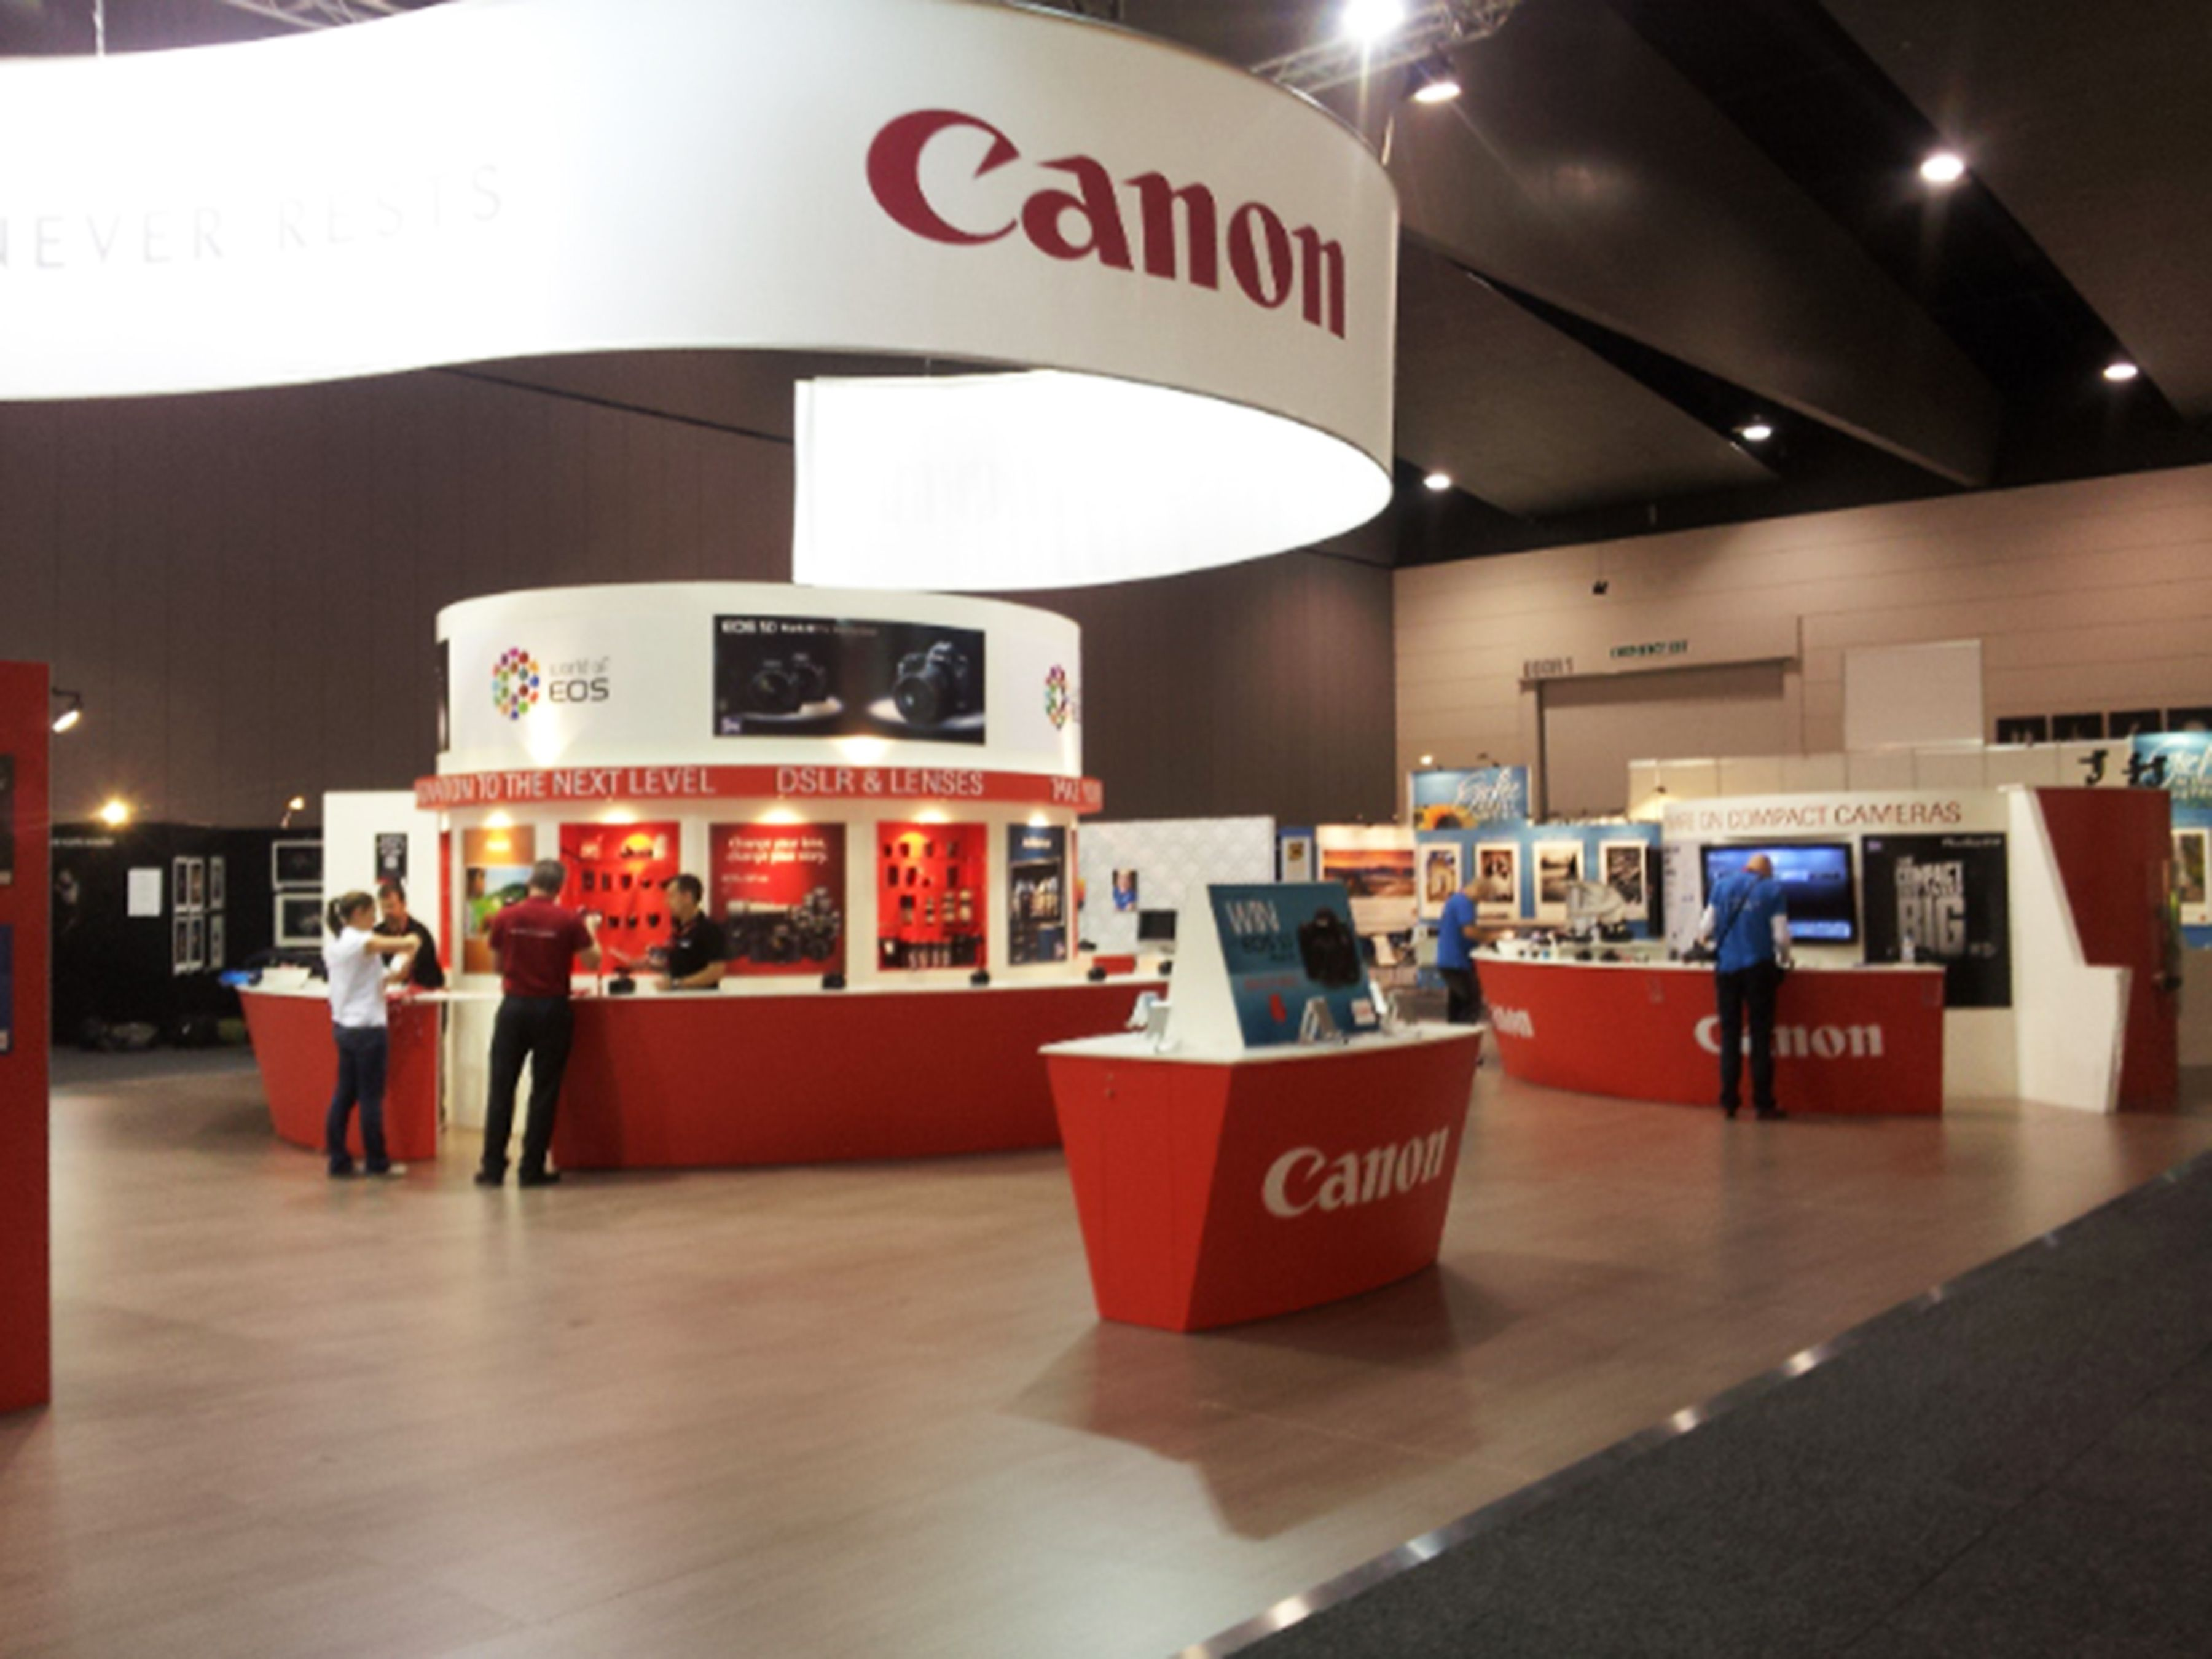 Expo Exhibition Stands Xbox One : Exhibition stand for canon exhibition stands by exhibitionco